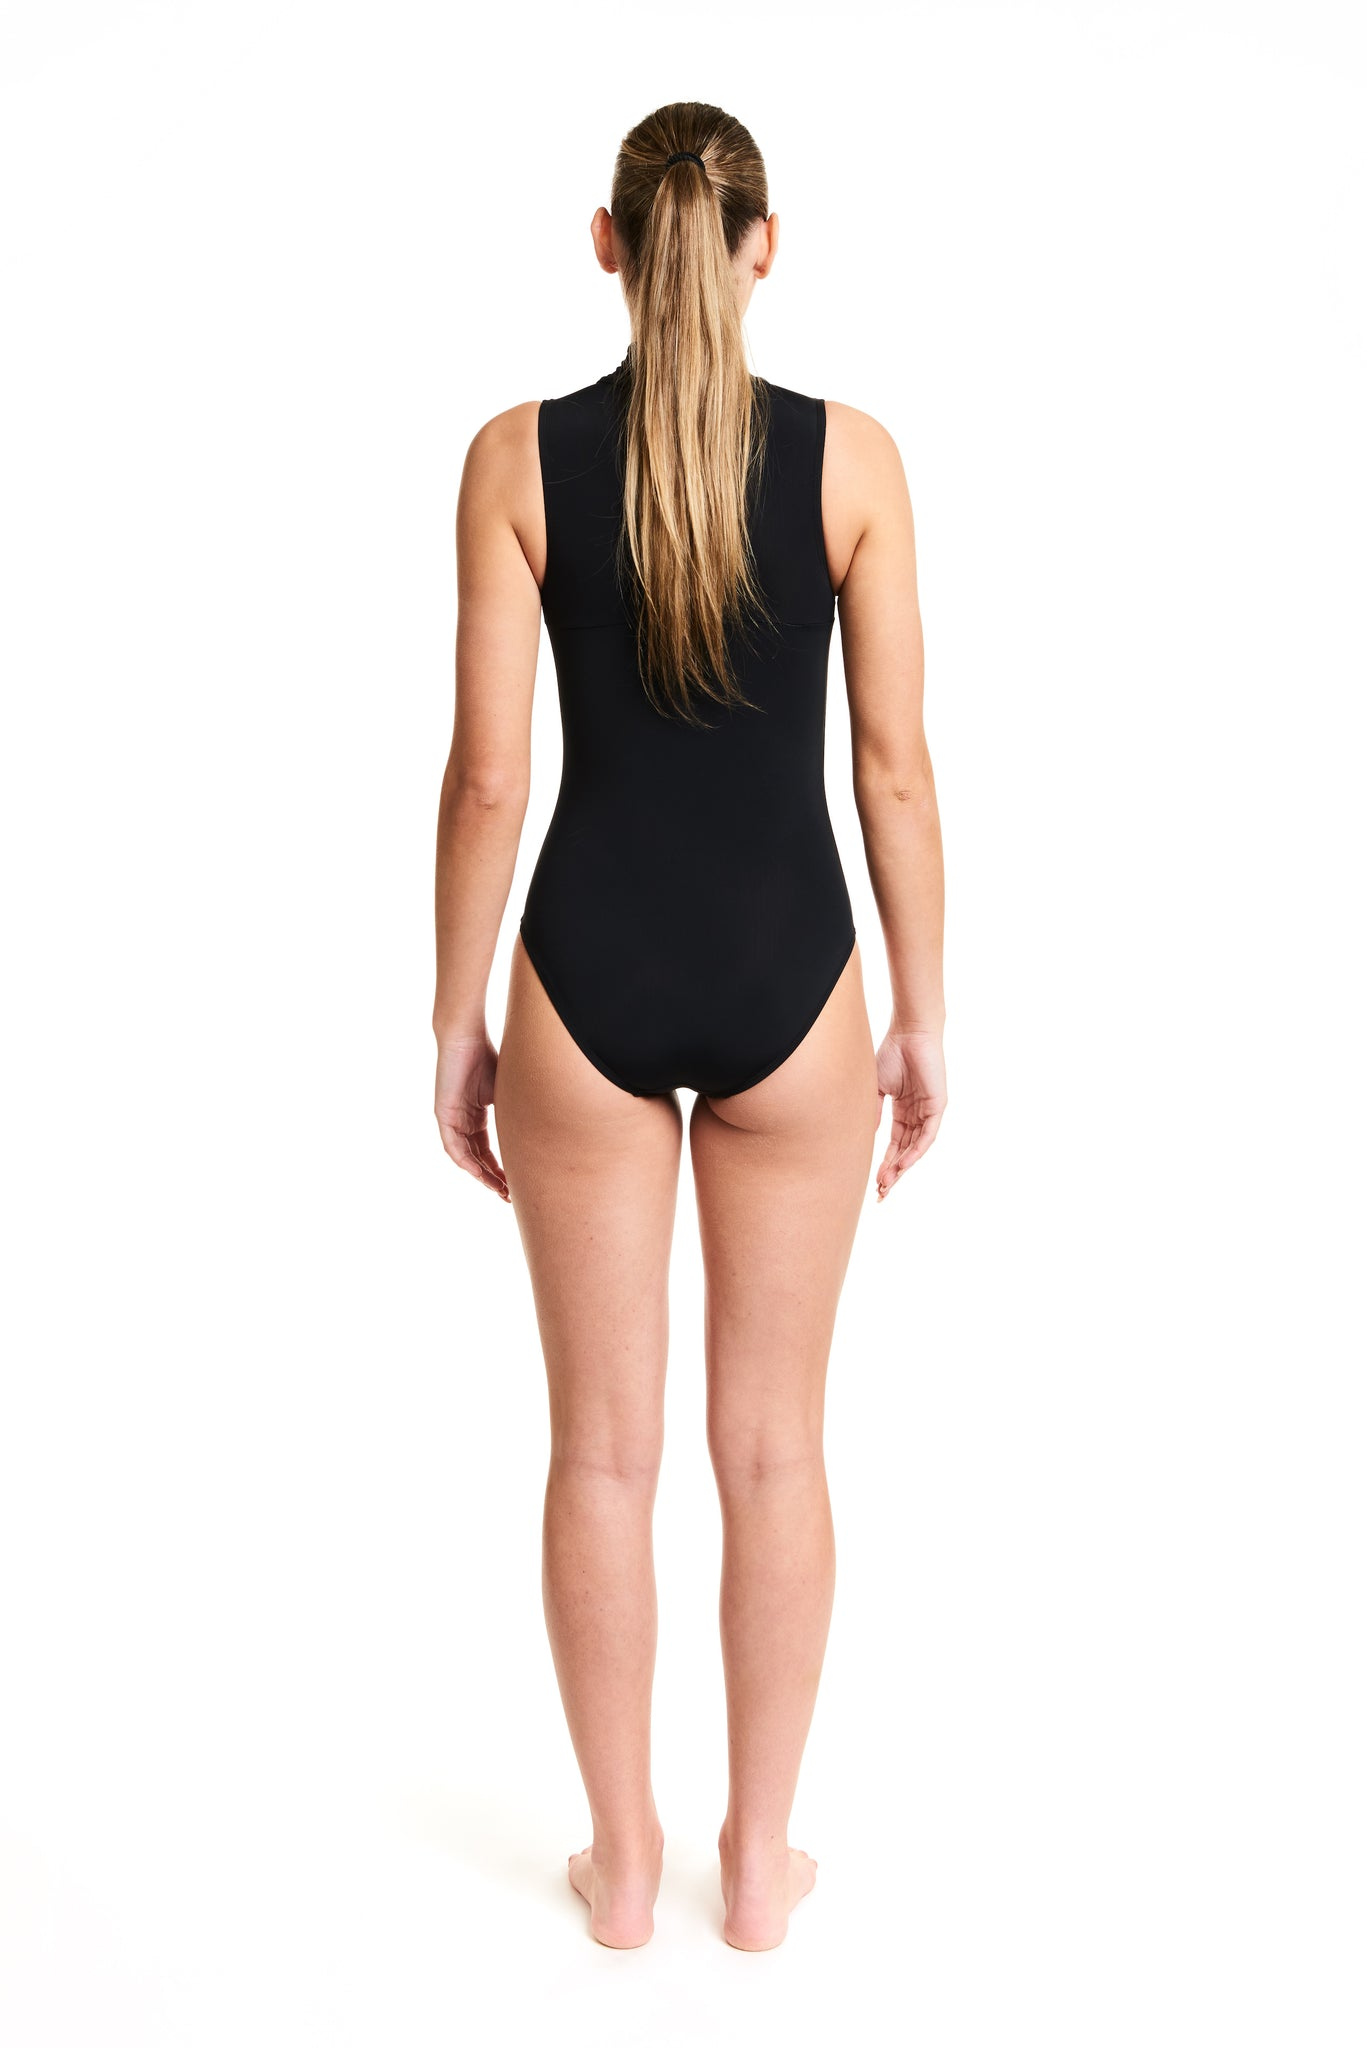 BARBARA ONE PIECE - BLACK